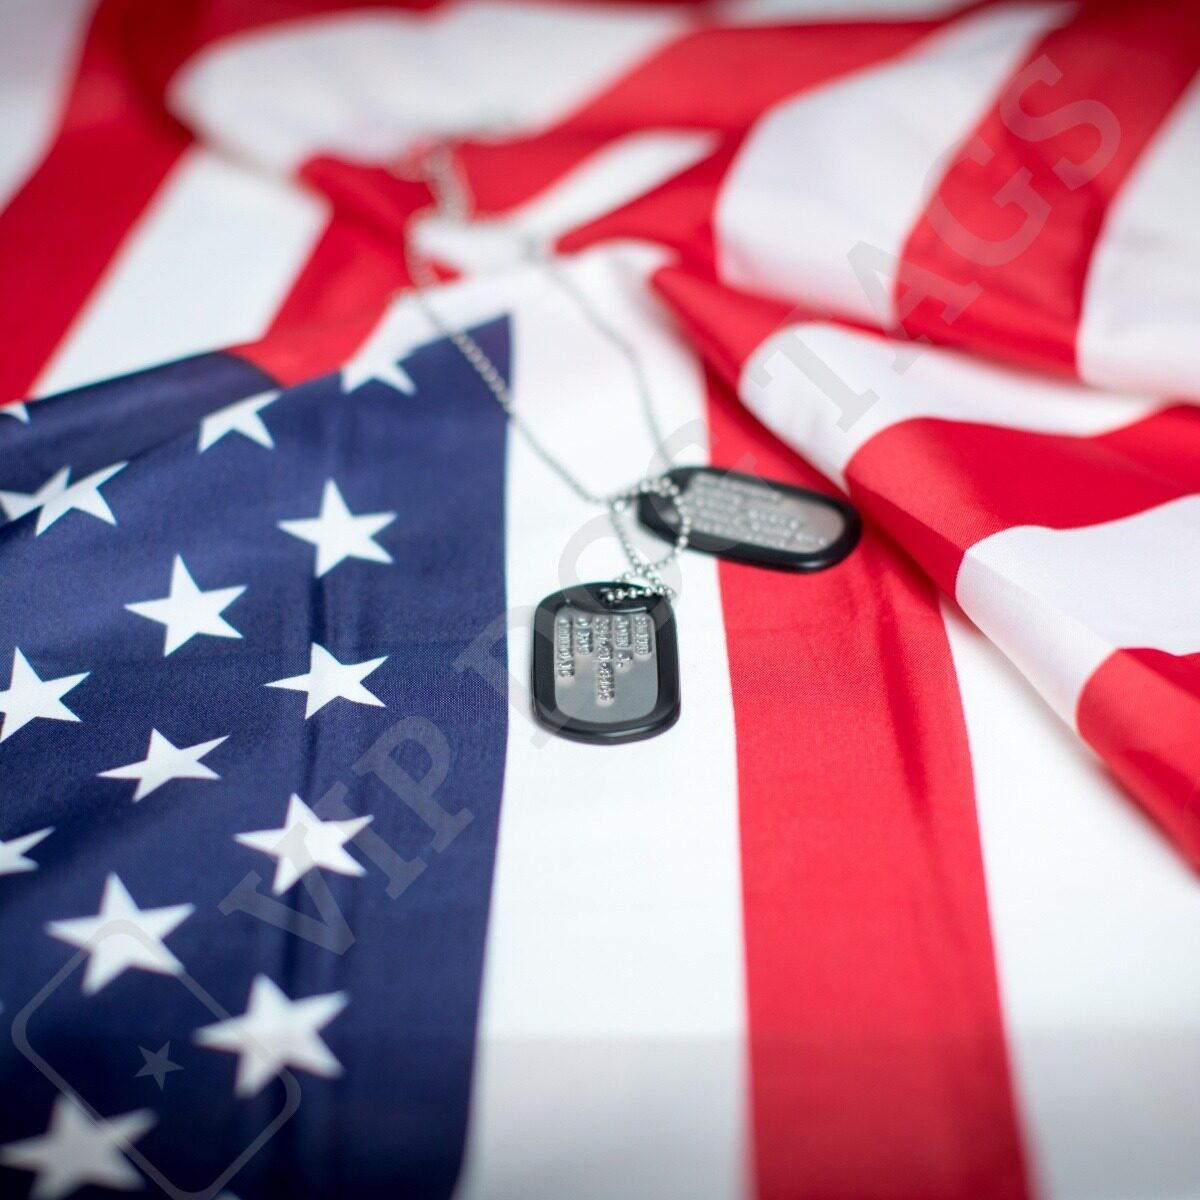 original_us_dog_tags_with_us_flag